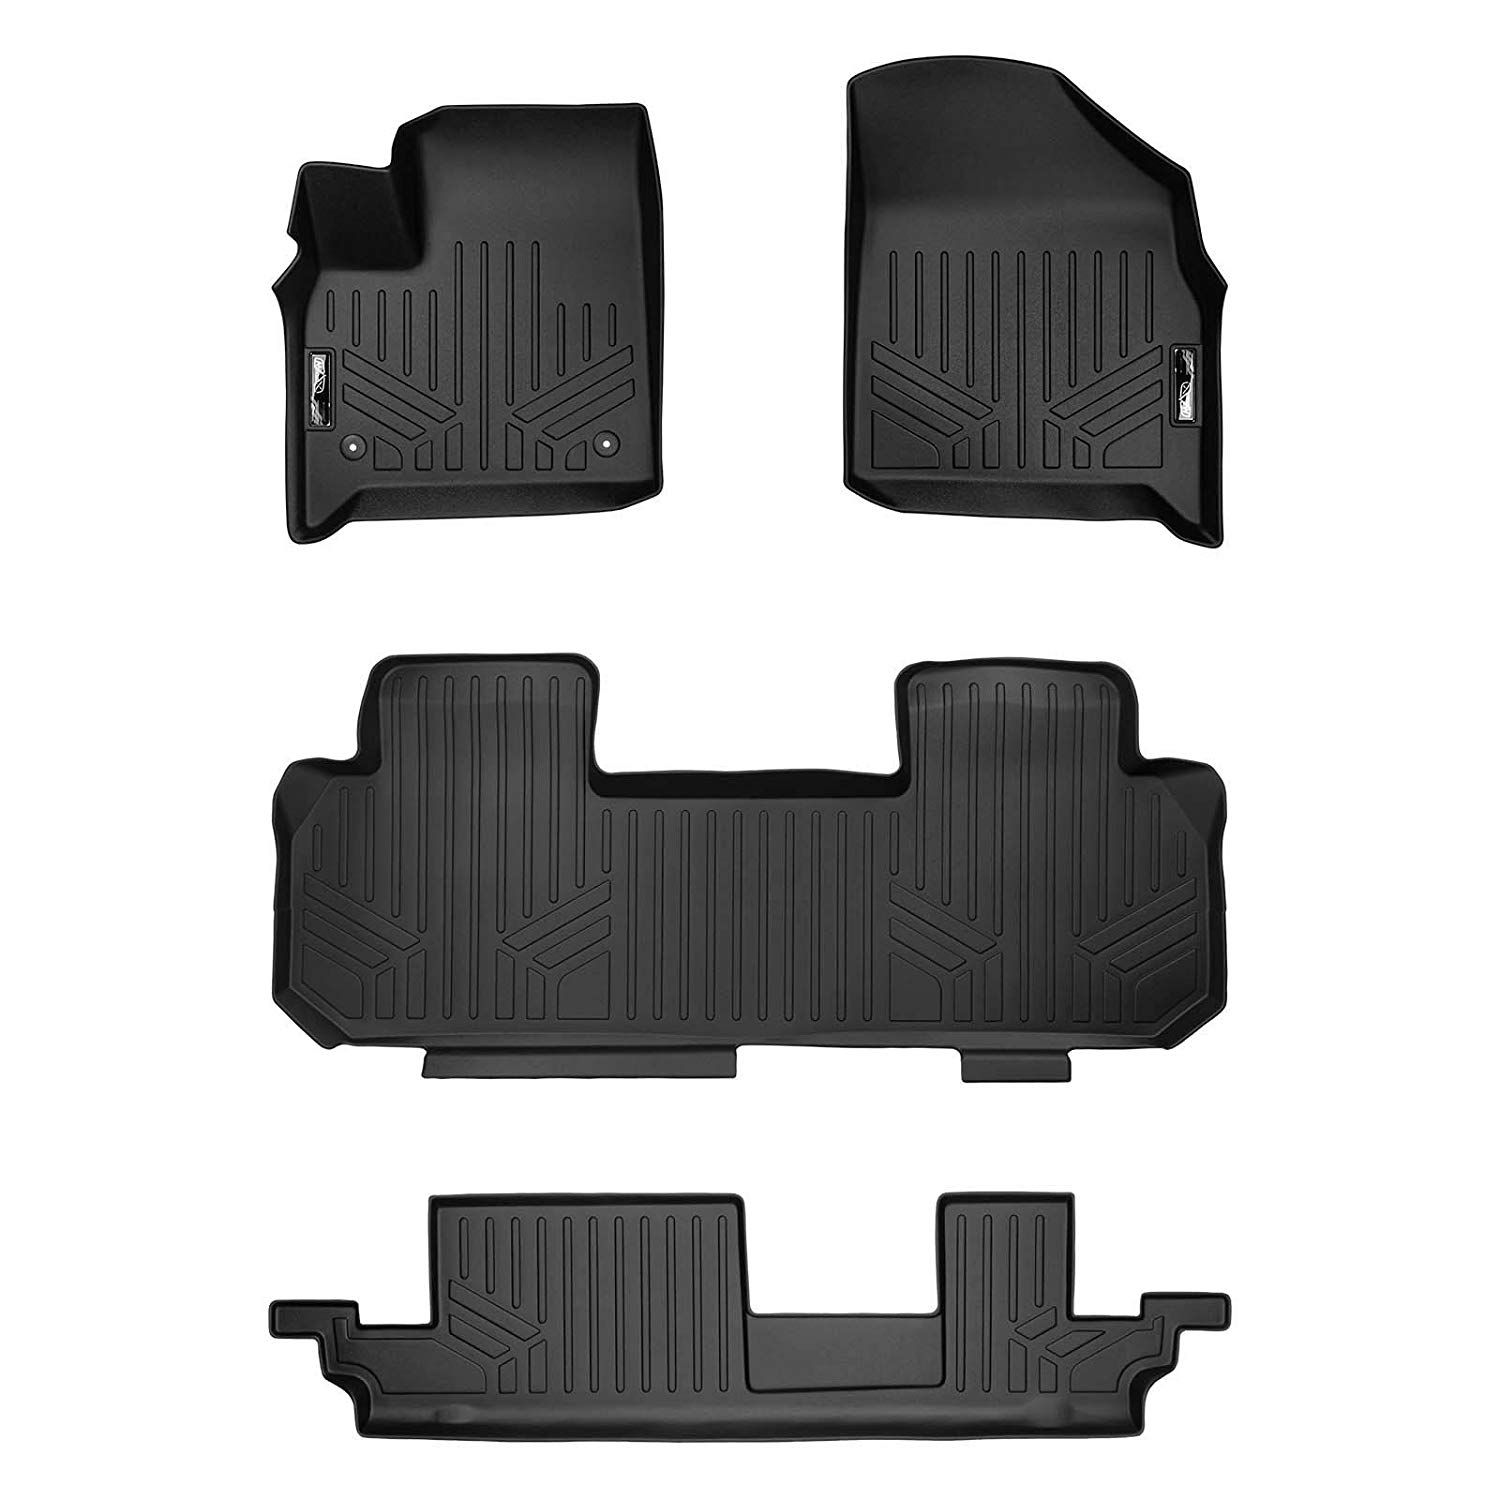 Smartliner Floor Mats 3 Row Liner Set Black For 2018 2019 Chevrolet Traverse With 2nd Row Bench Seat See This Gr Chevrolet Traverse Chevrolet Buick Enclave